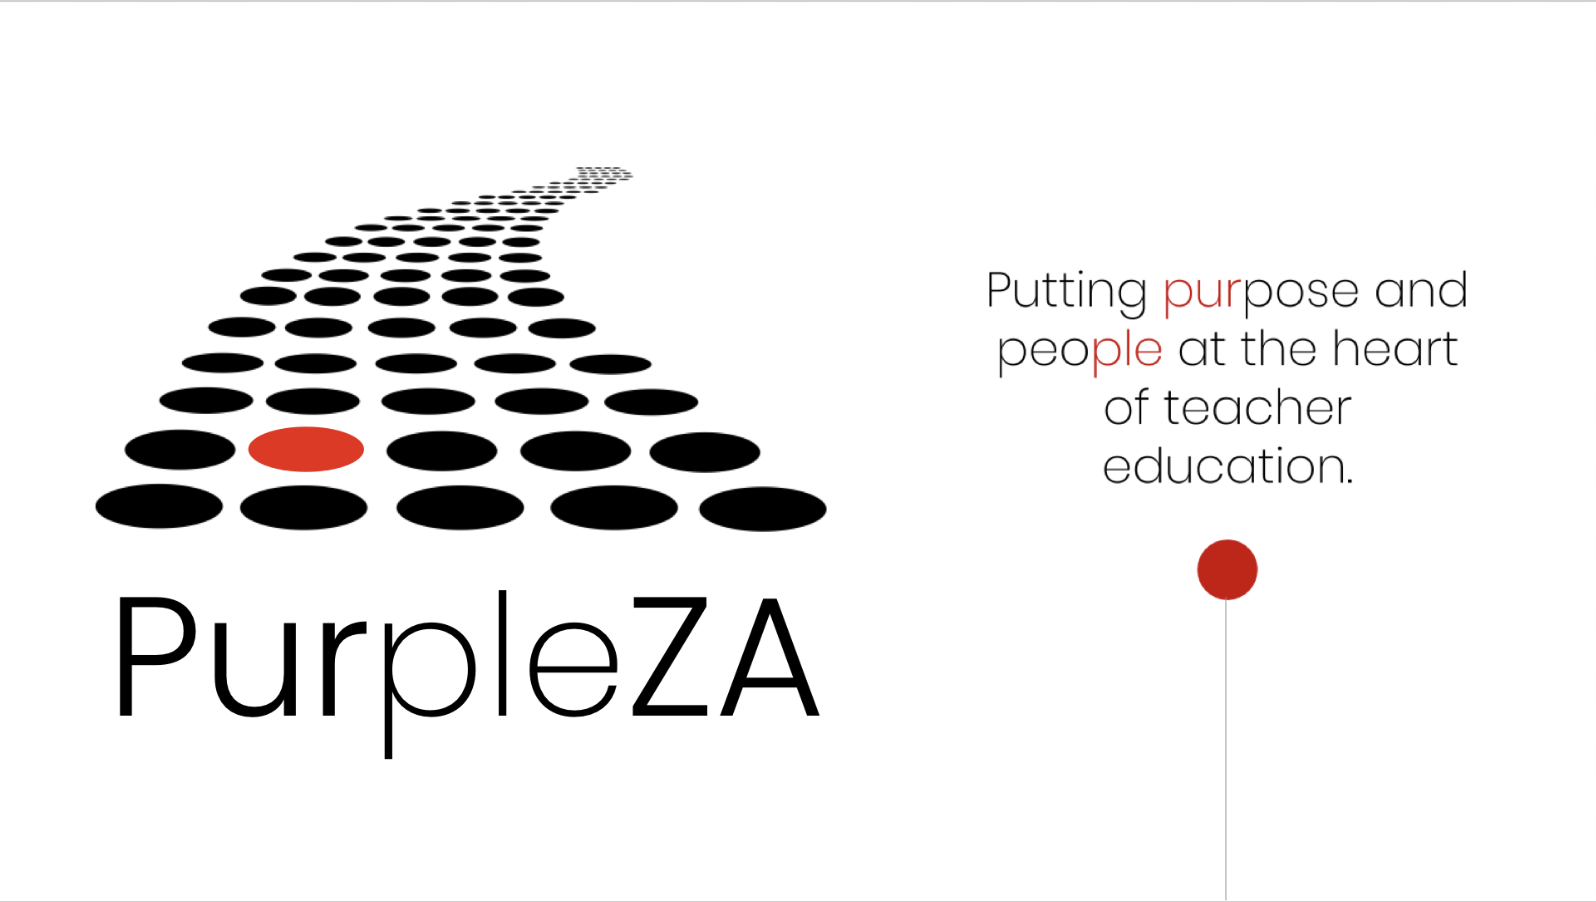 PurpleZA - Putting purpose and people at the heart of teacher education